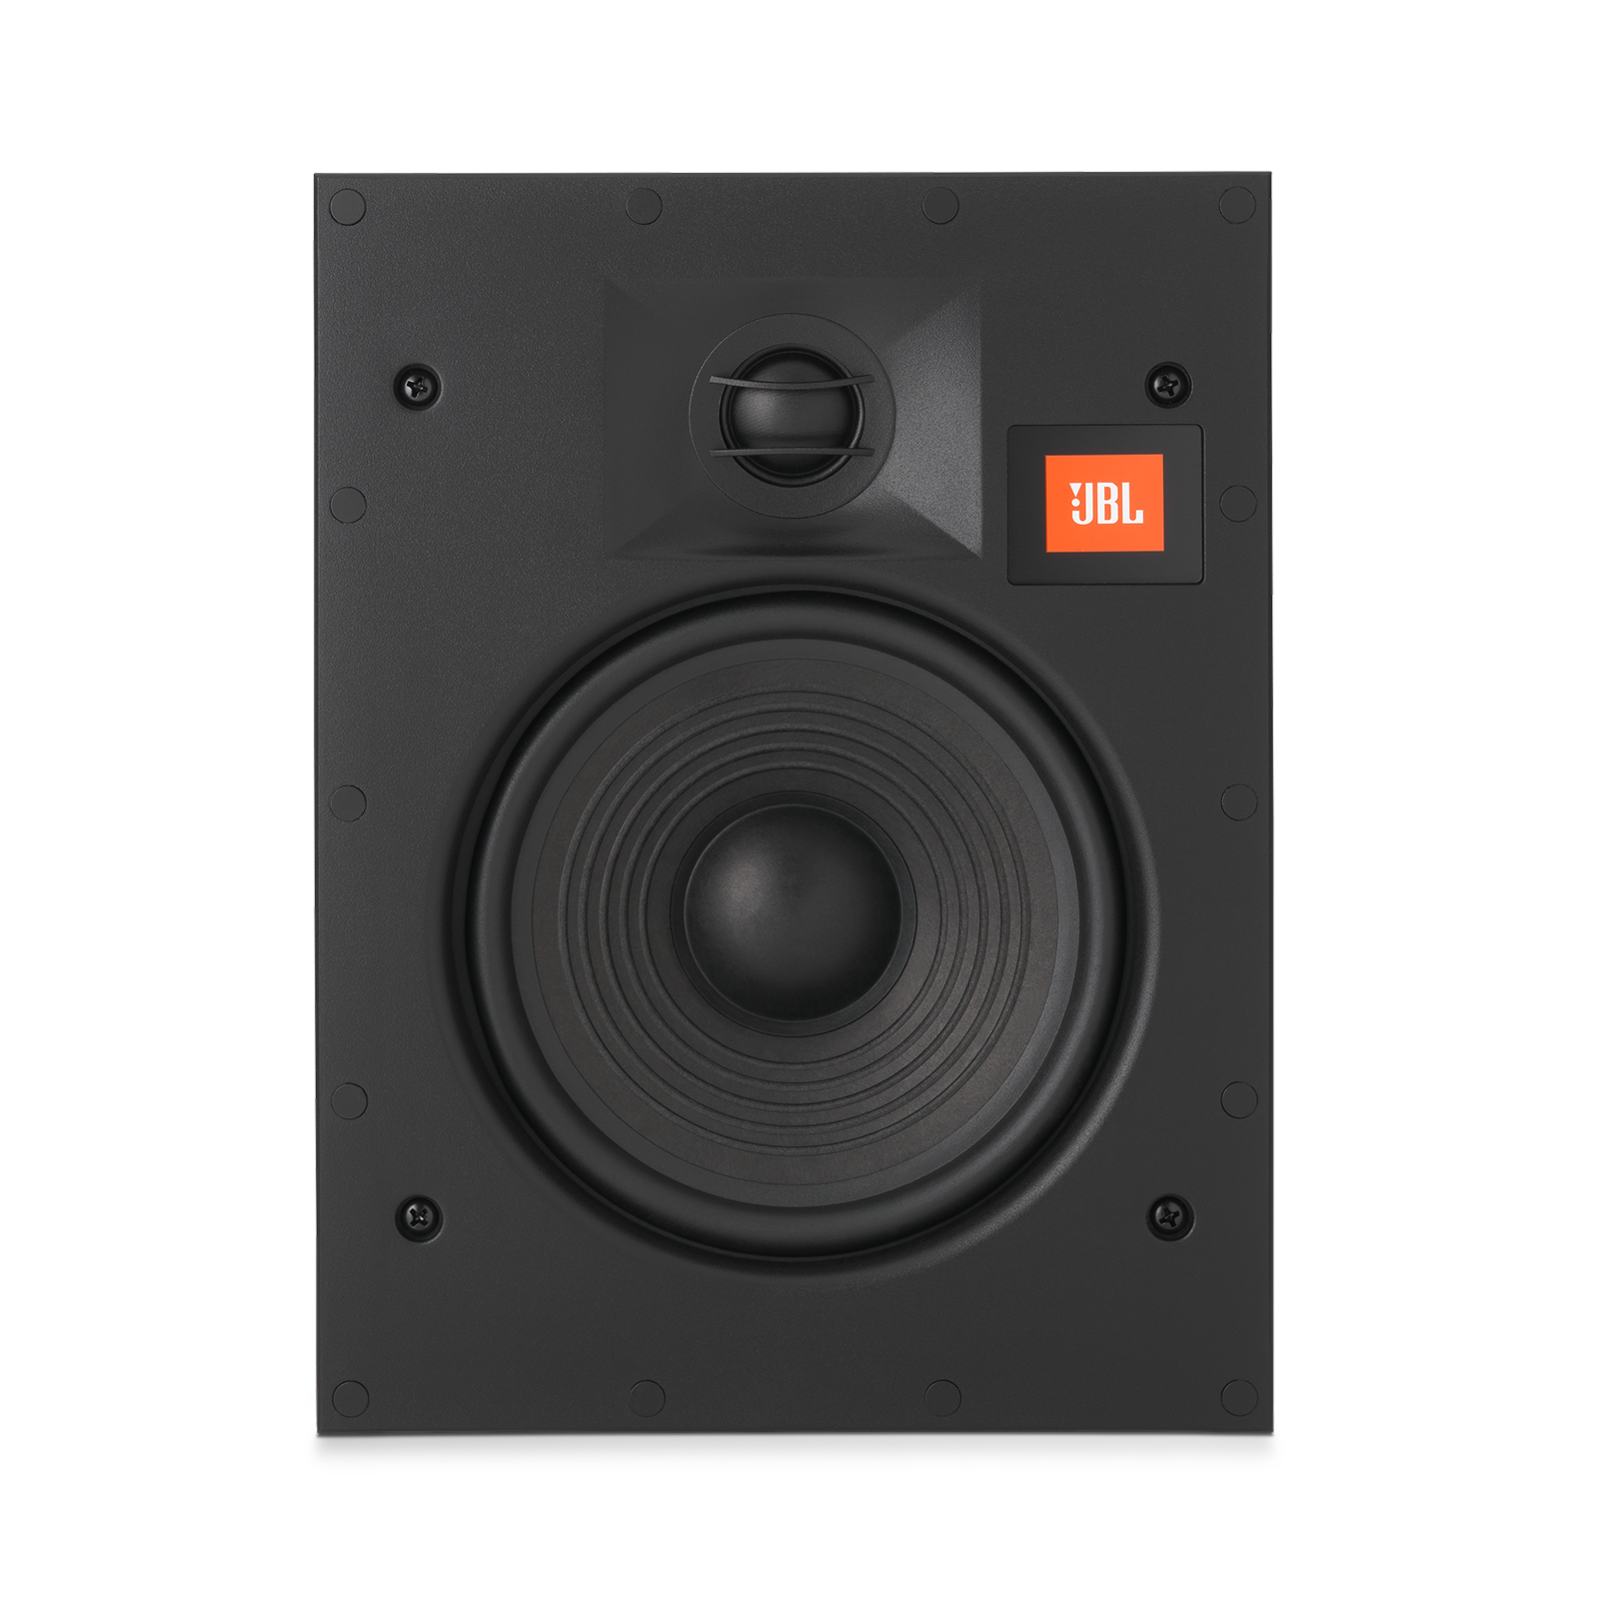 sonic floor limitless center standing speakers creations guides buying floors radiant speaker guide bluetooth learning electronix